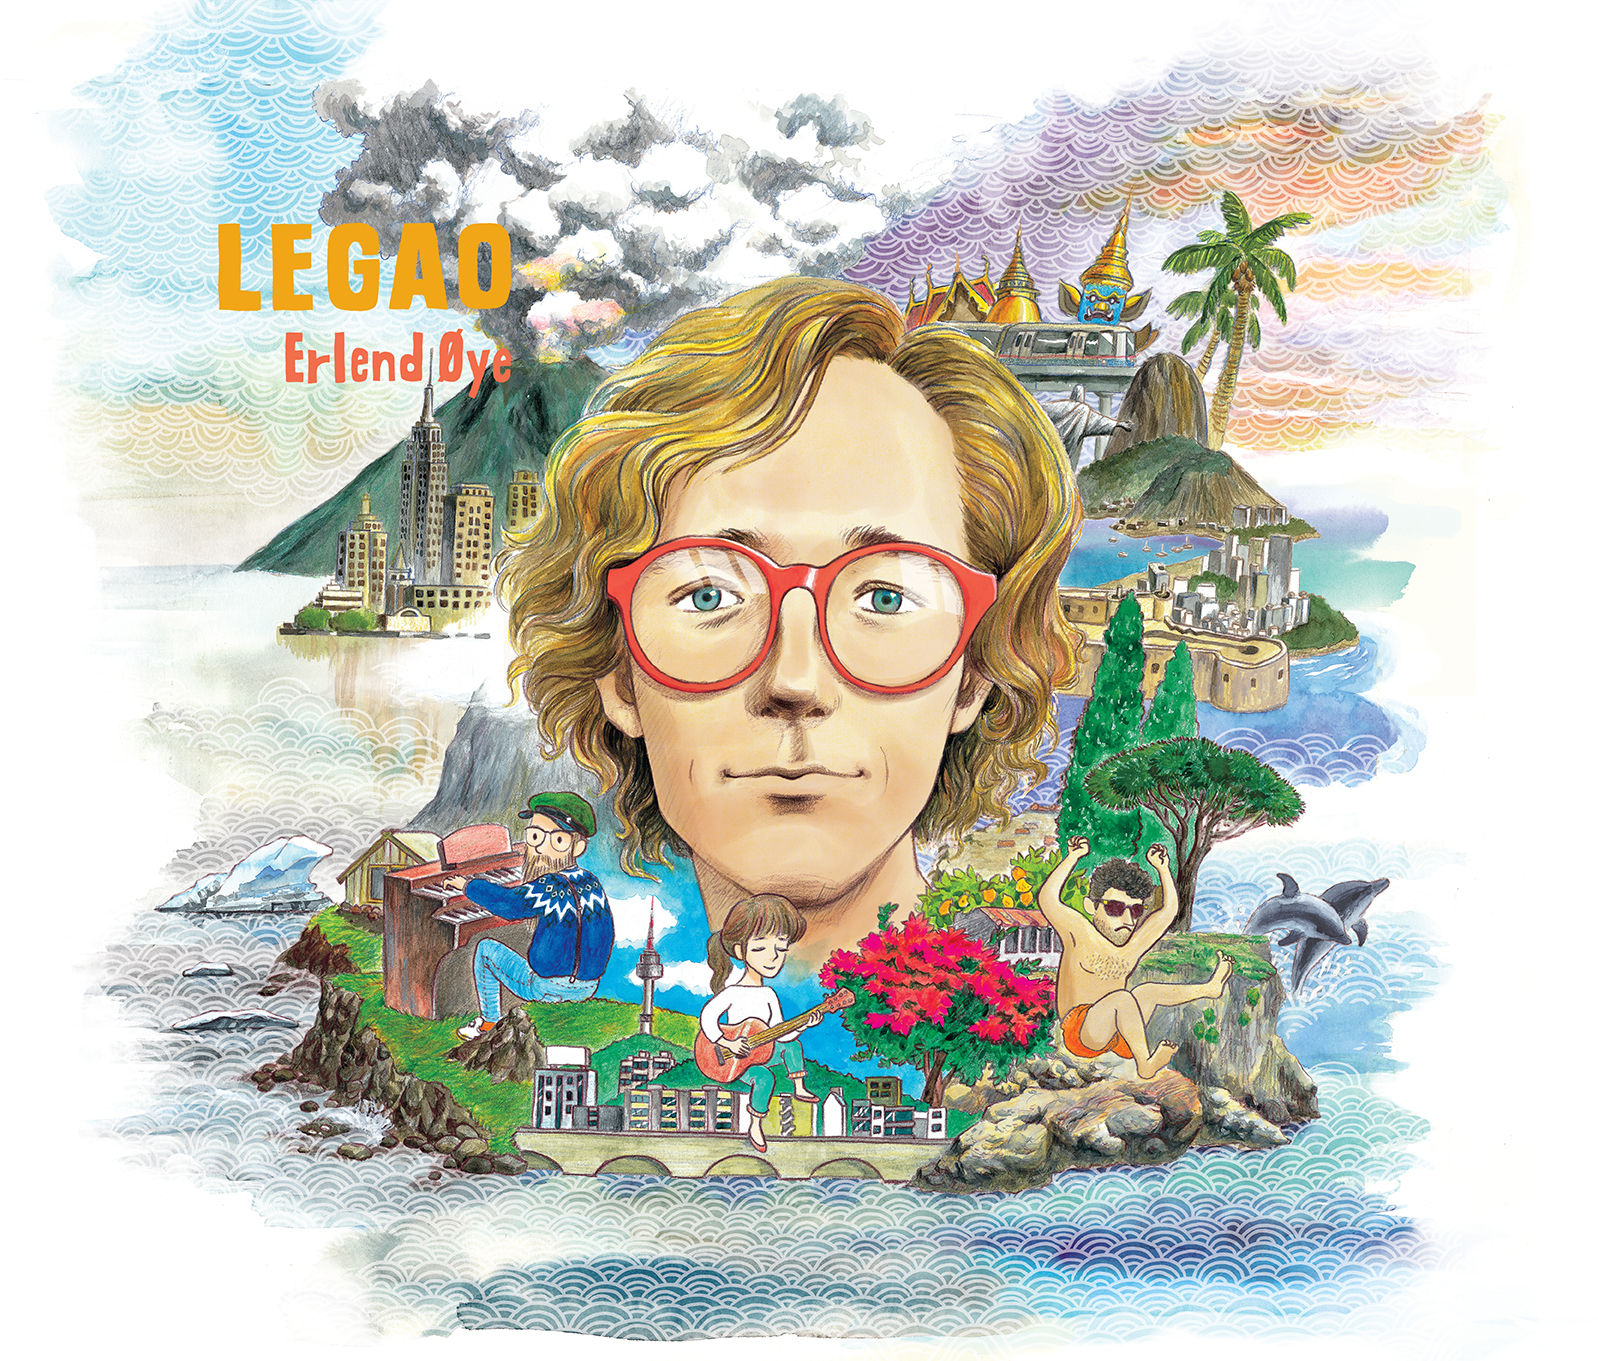 Erlend Øye <LEGAO> album cover illustration